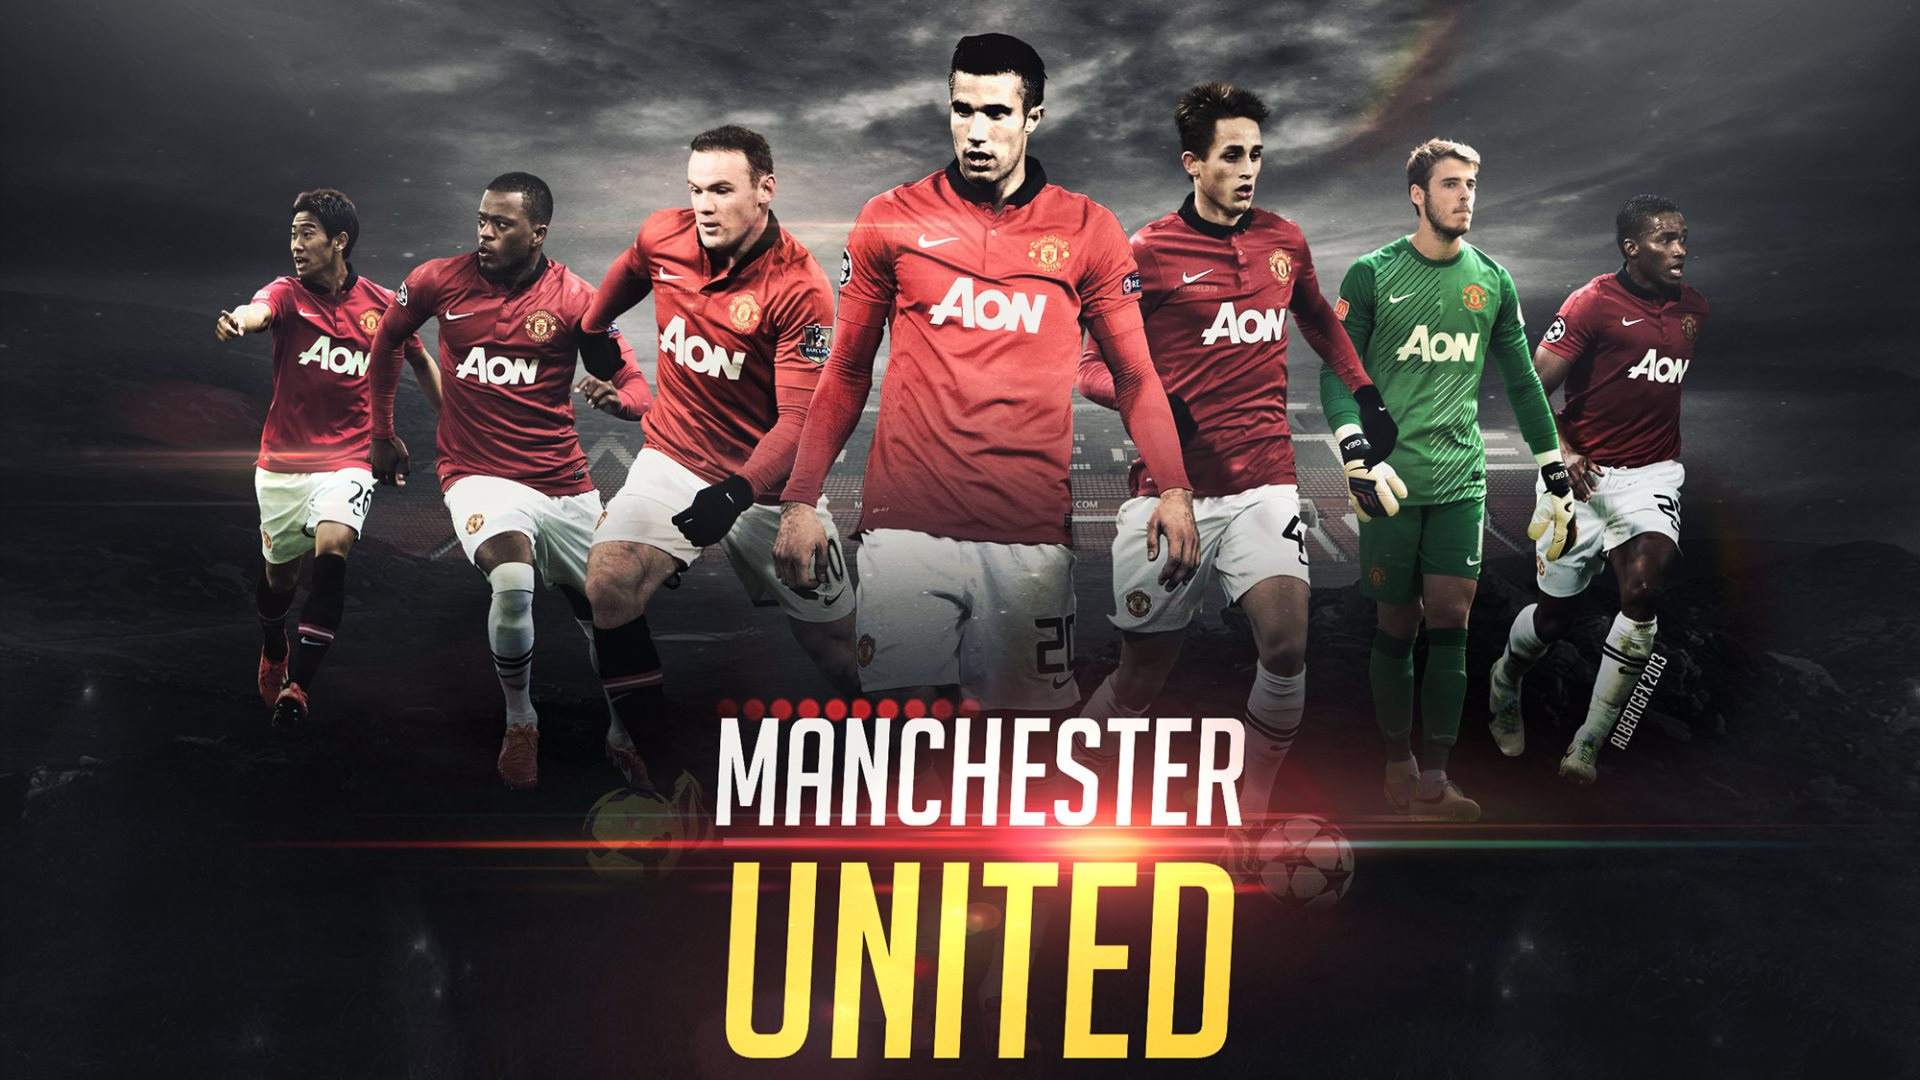 Manchester United Logo Football Club Wallpaper For PC Wallpaper with 115